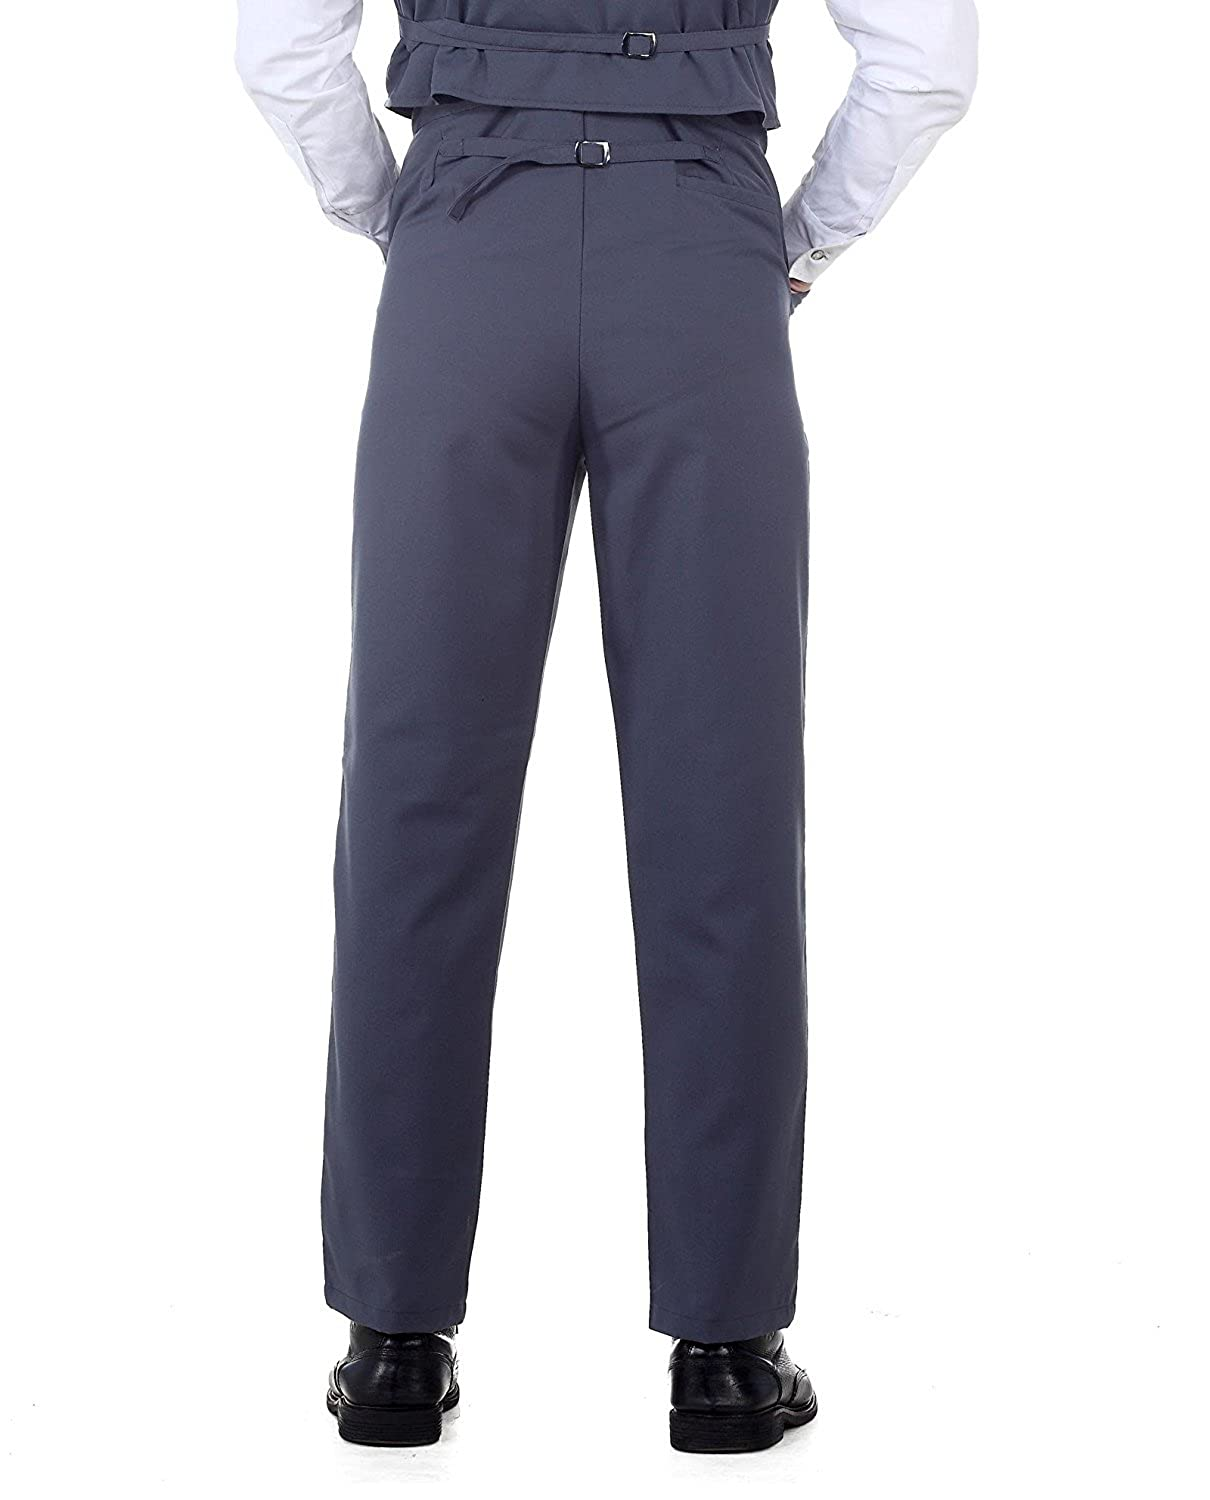 Edwardian Men's Pants, Trousers, Overalls Steampunk Victorian Costume Canvas Classic Pants Grey $37.95 AT vintagedancer.com